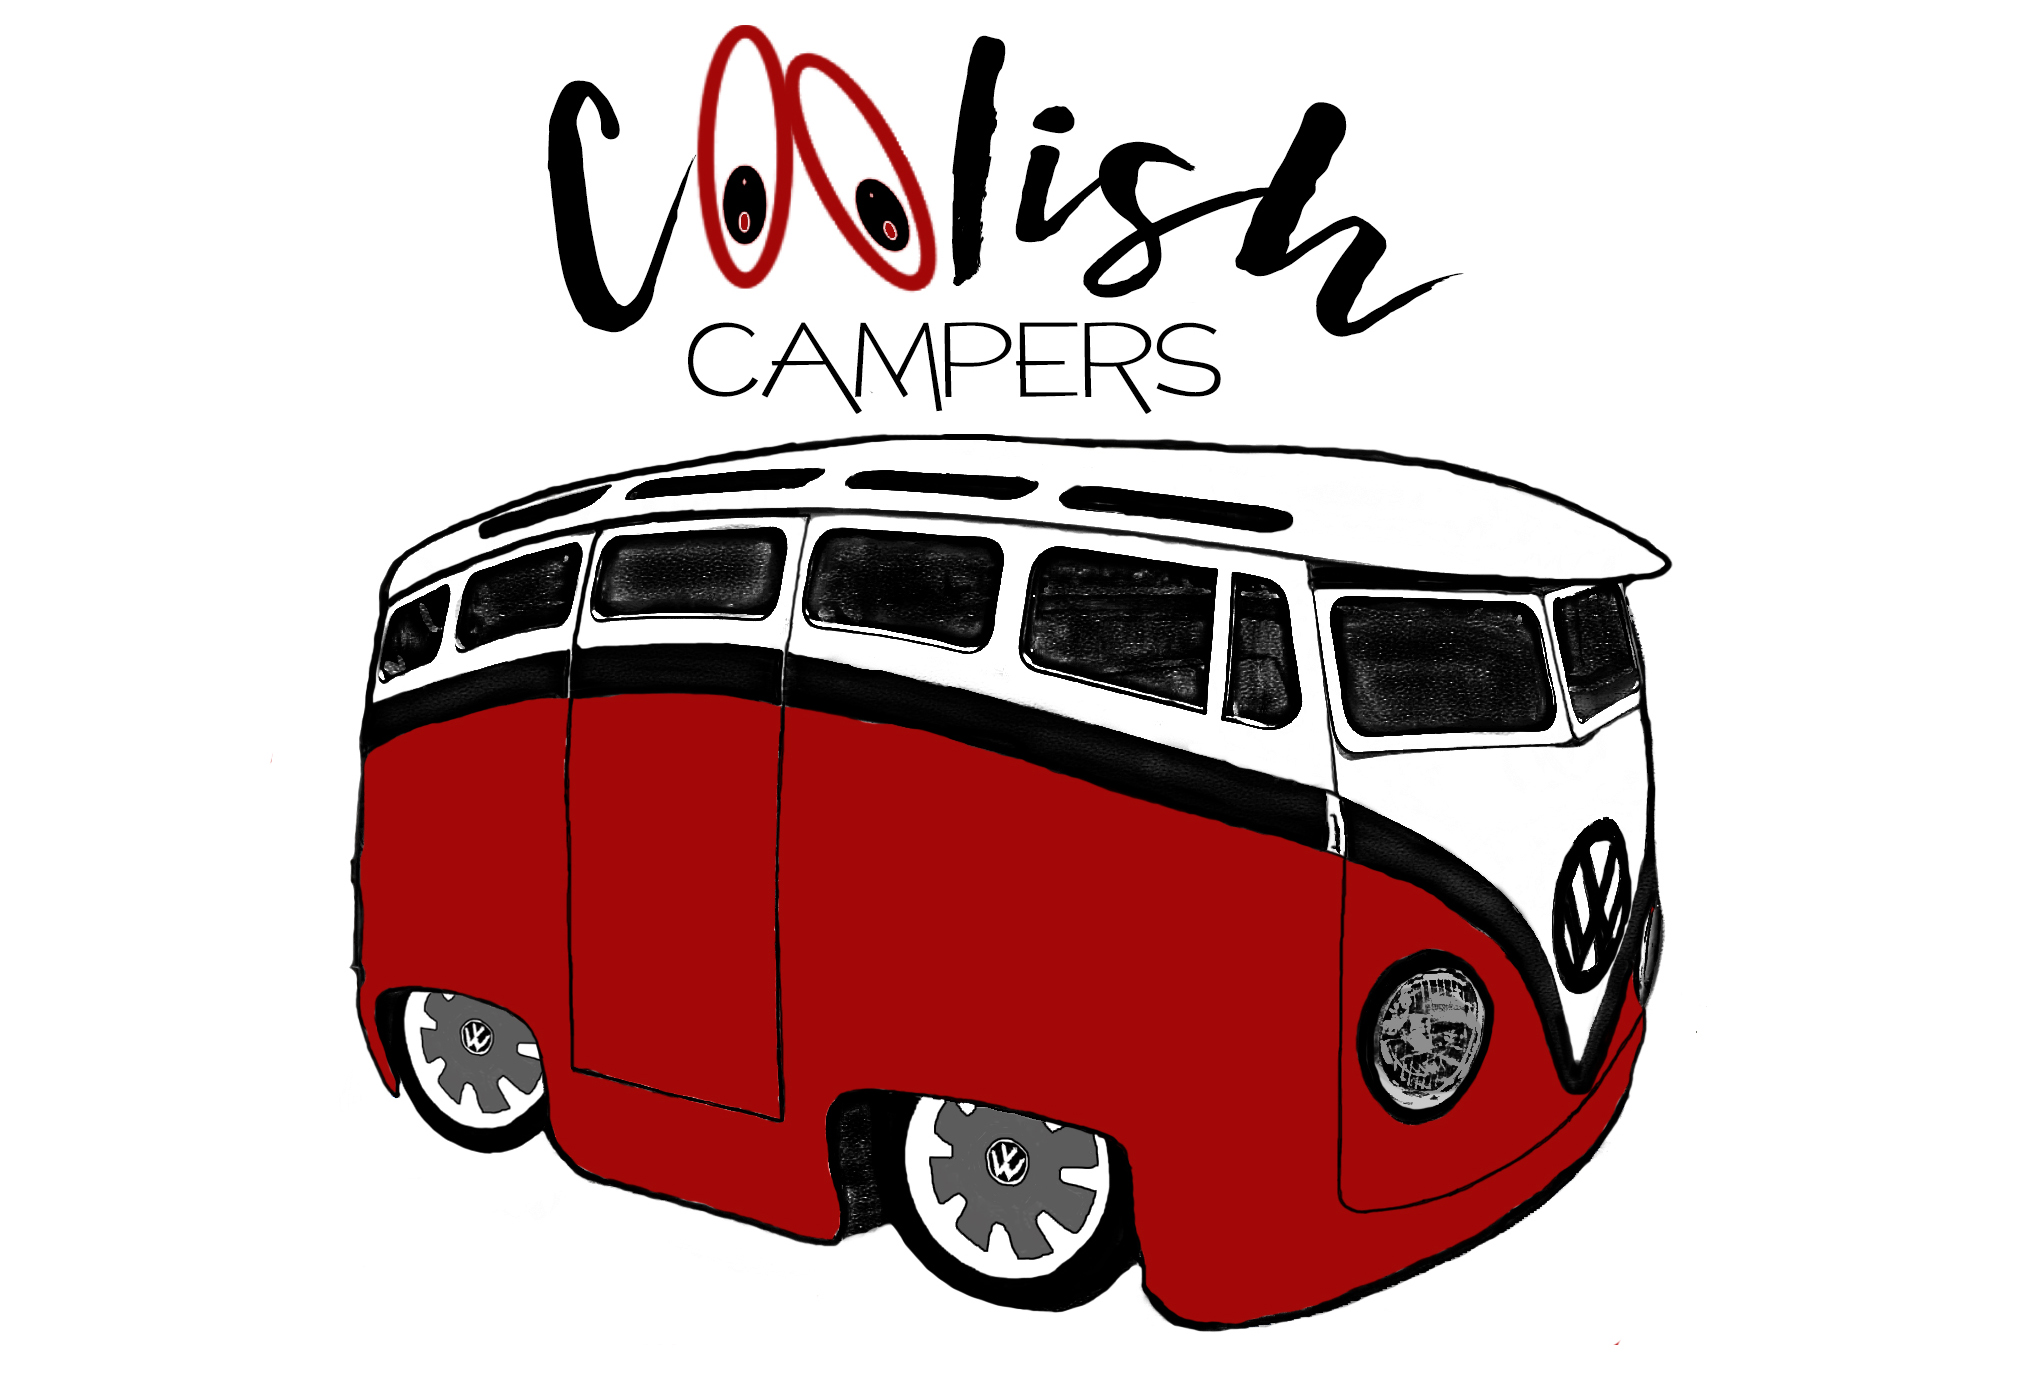 logo_coolish_campers